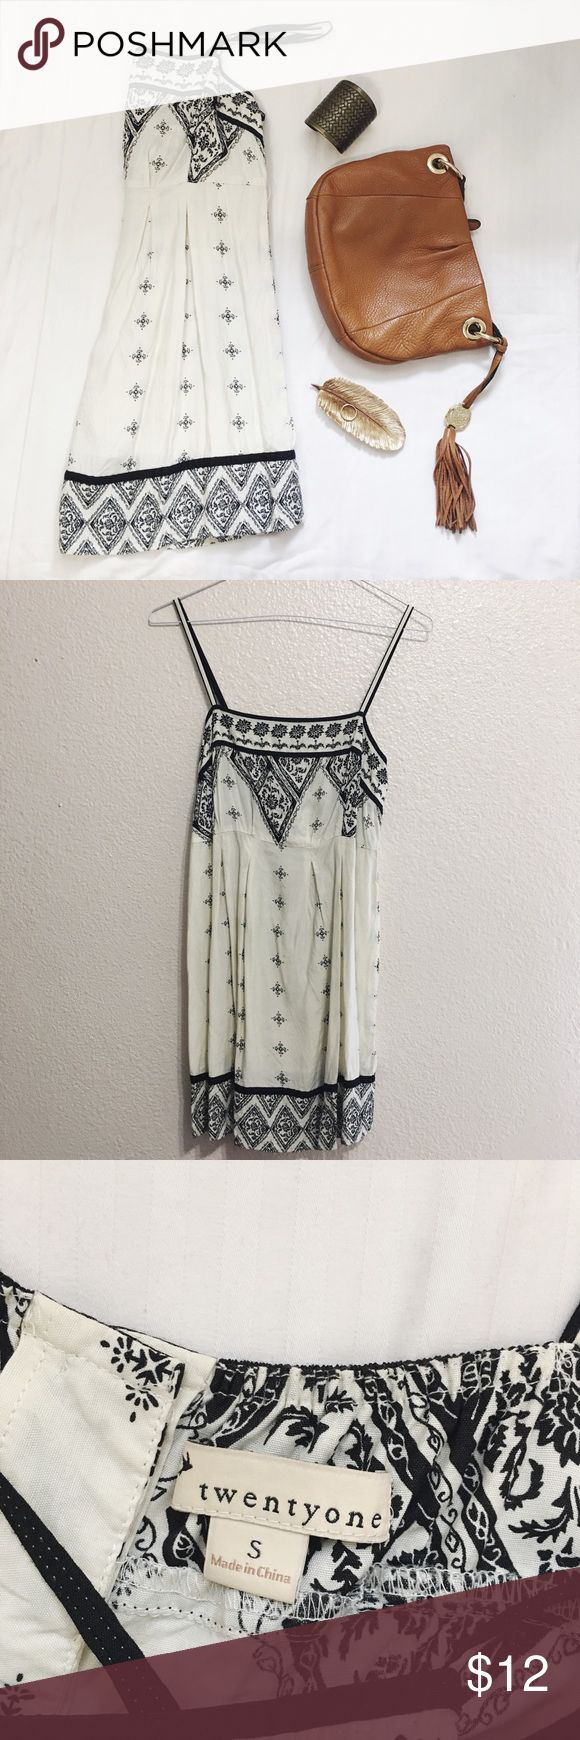 Tribal Print Dress Forever 21  Tribal styled dress Adjustable strap Belt hook but not included  Back is buttoned Size: S Used; little stain shown on pics (unnoticeable)  Other items NOT included ‼️  All sales are final/ NO return or exchange  #dress #tribalprint #forever21 #forever21dress Forever 21 Dresses Mini